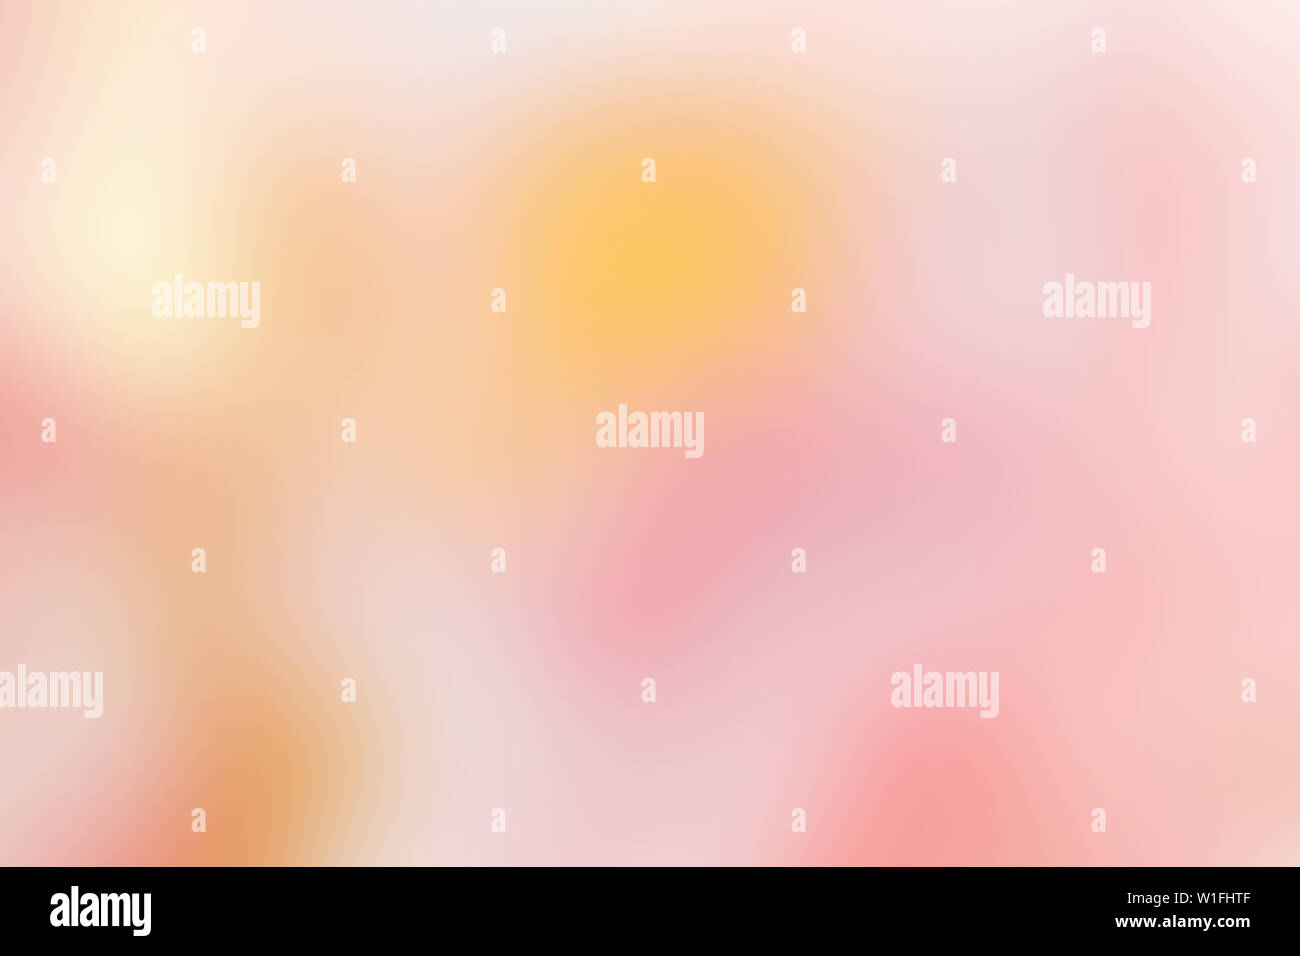 bright pink and yellow coloured abstract blurred background. Blurry abstract design. Pattern can be used as a background or for cards, invitations and - Stock Image